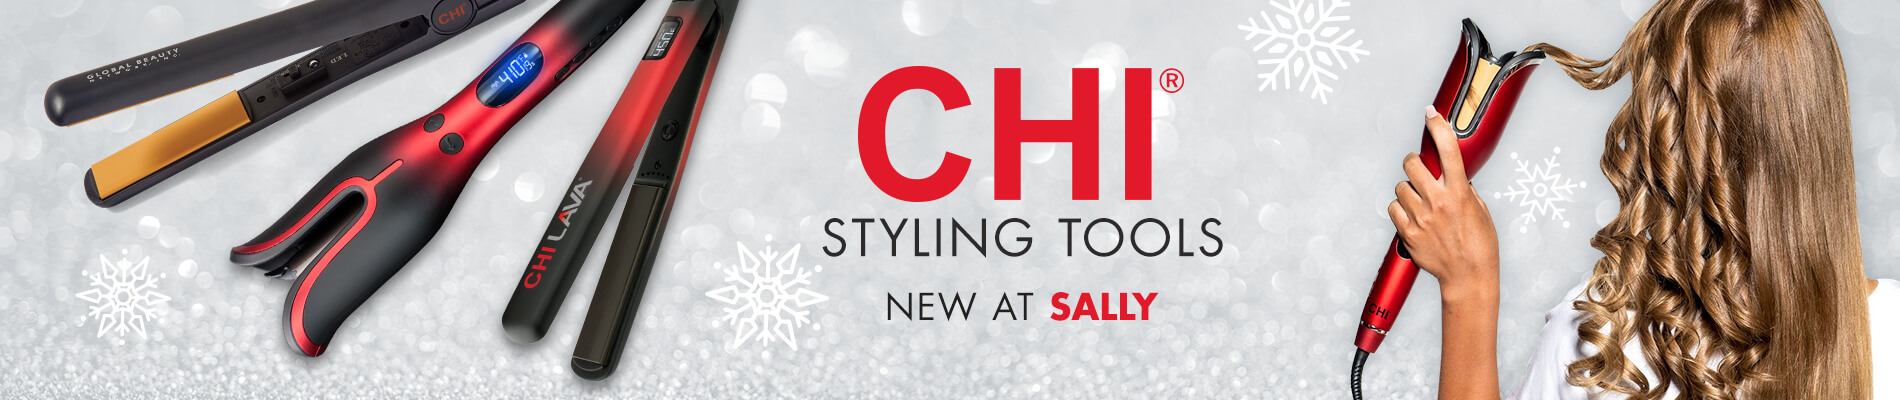 CHI Styling Tools